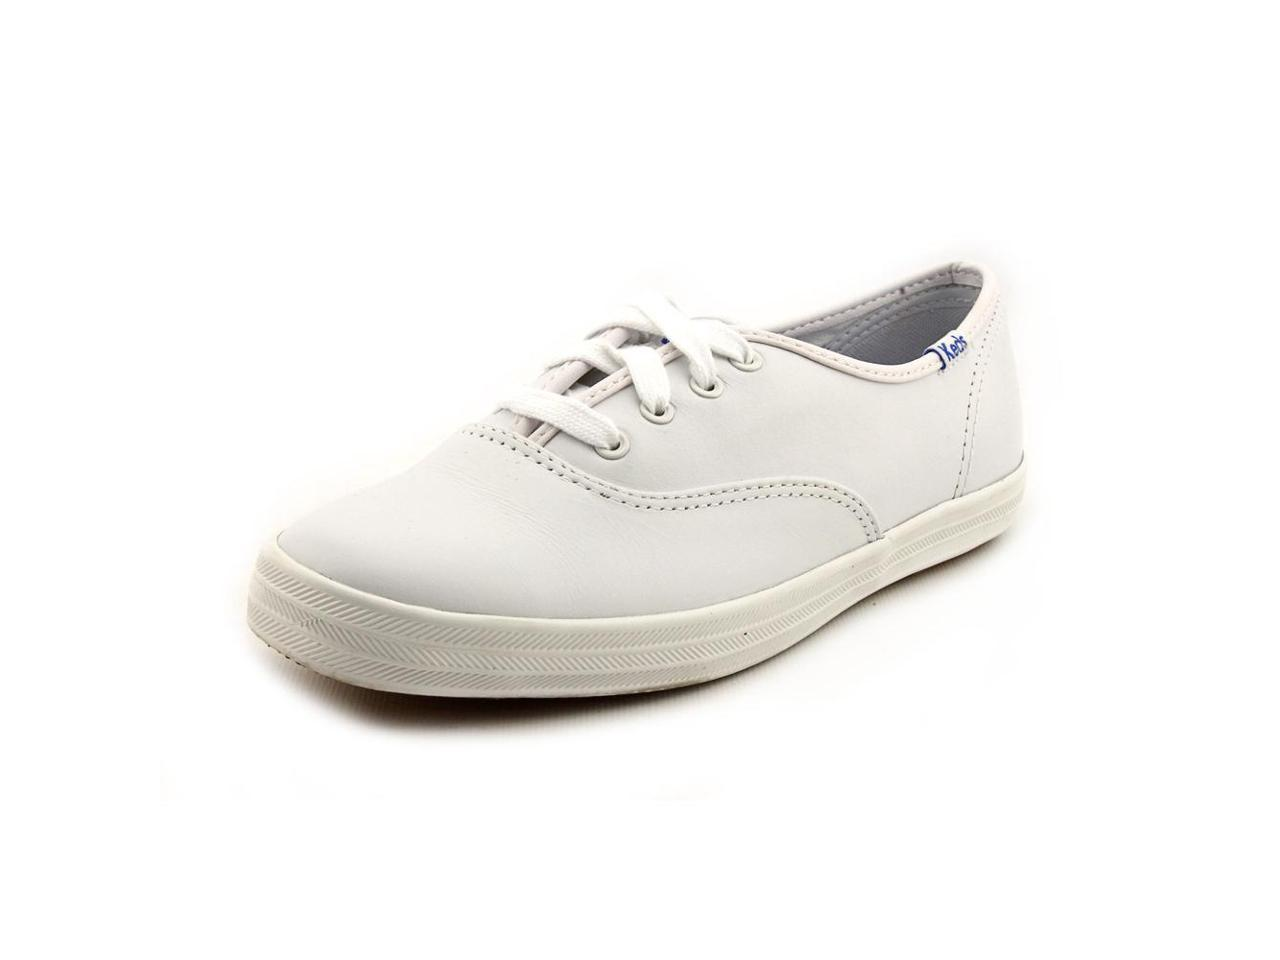 Oxfords Narrow Leather Sneakers Shoes